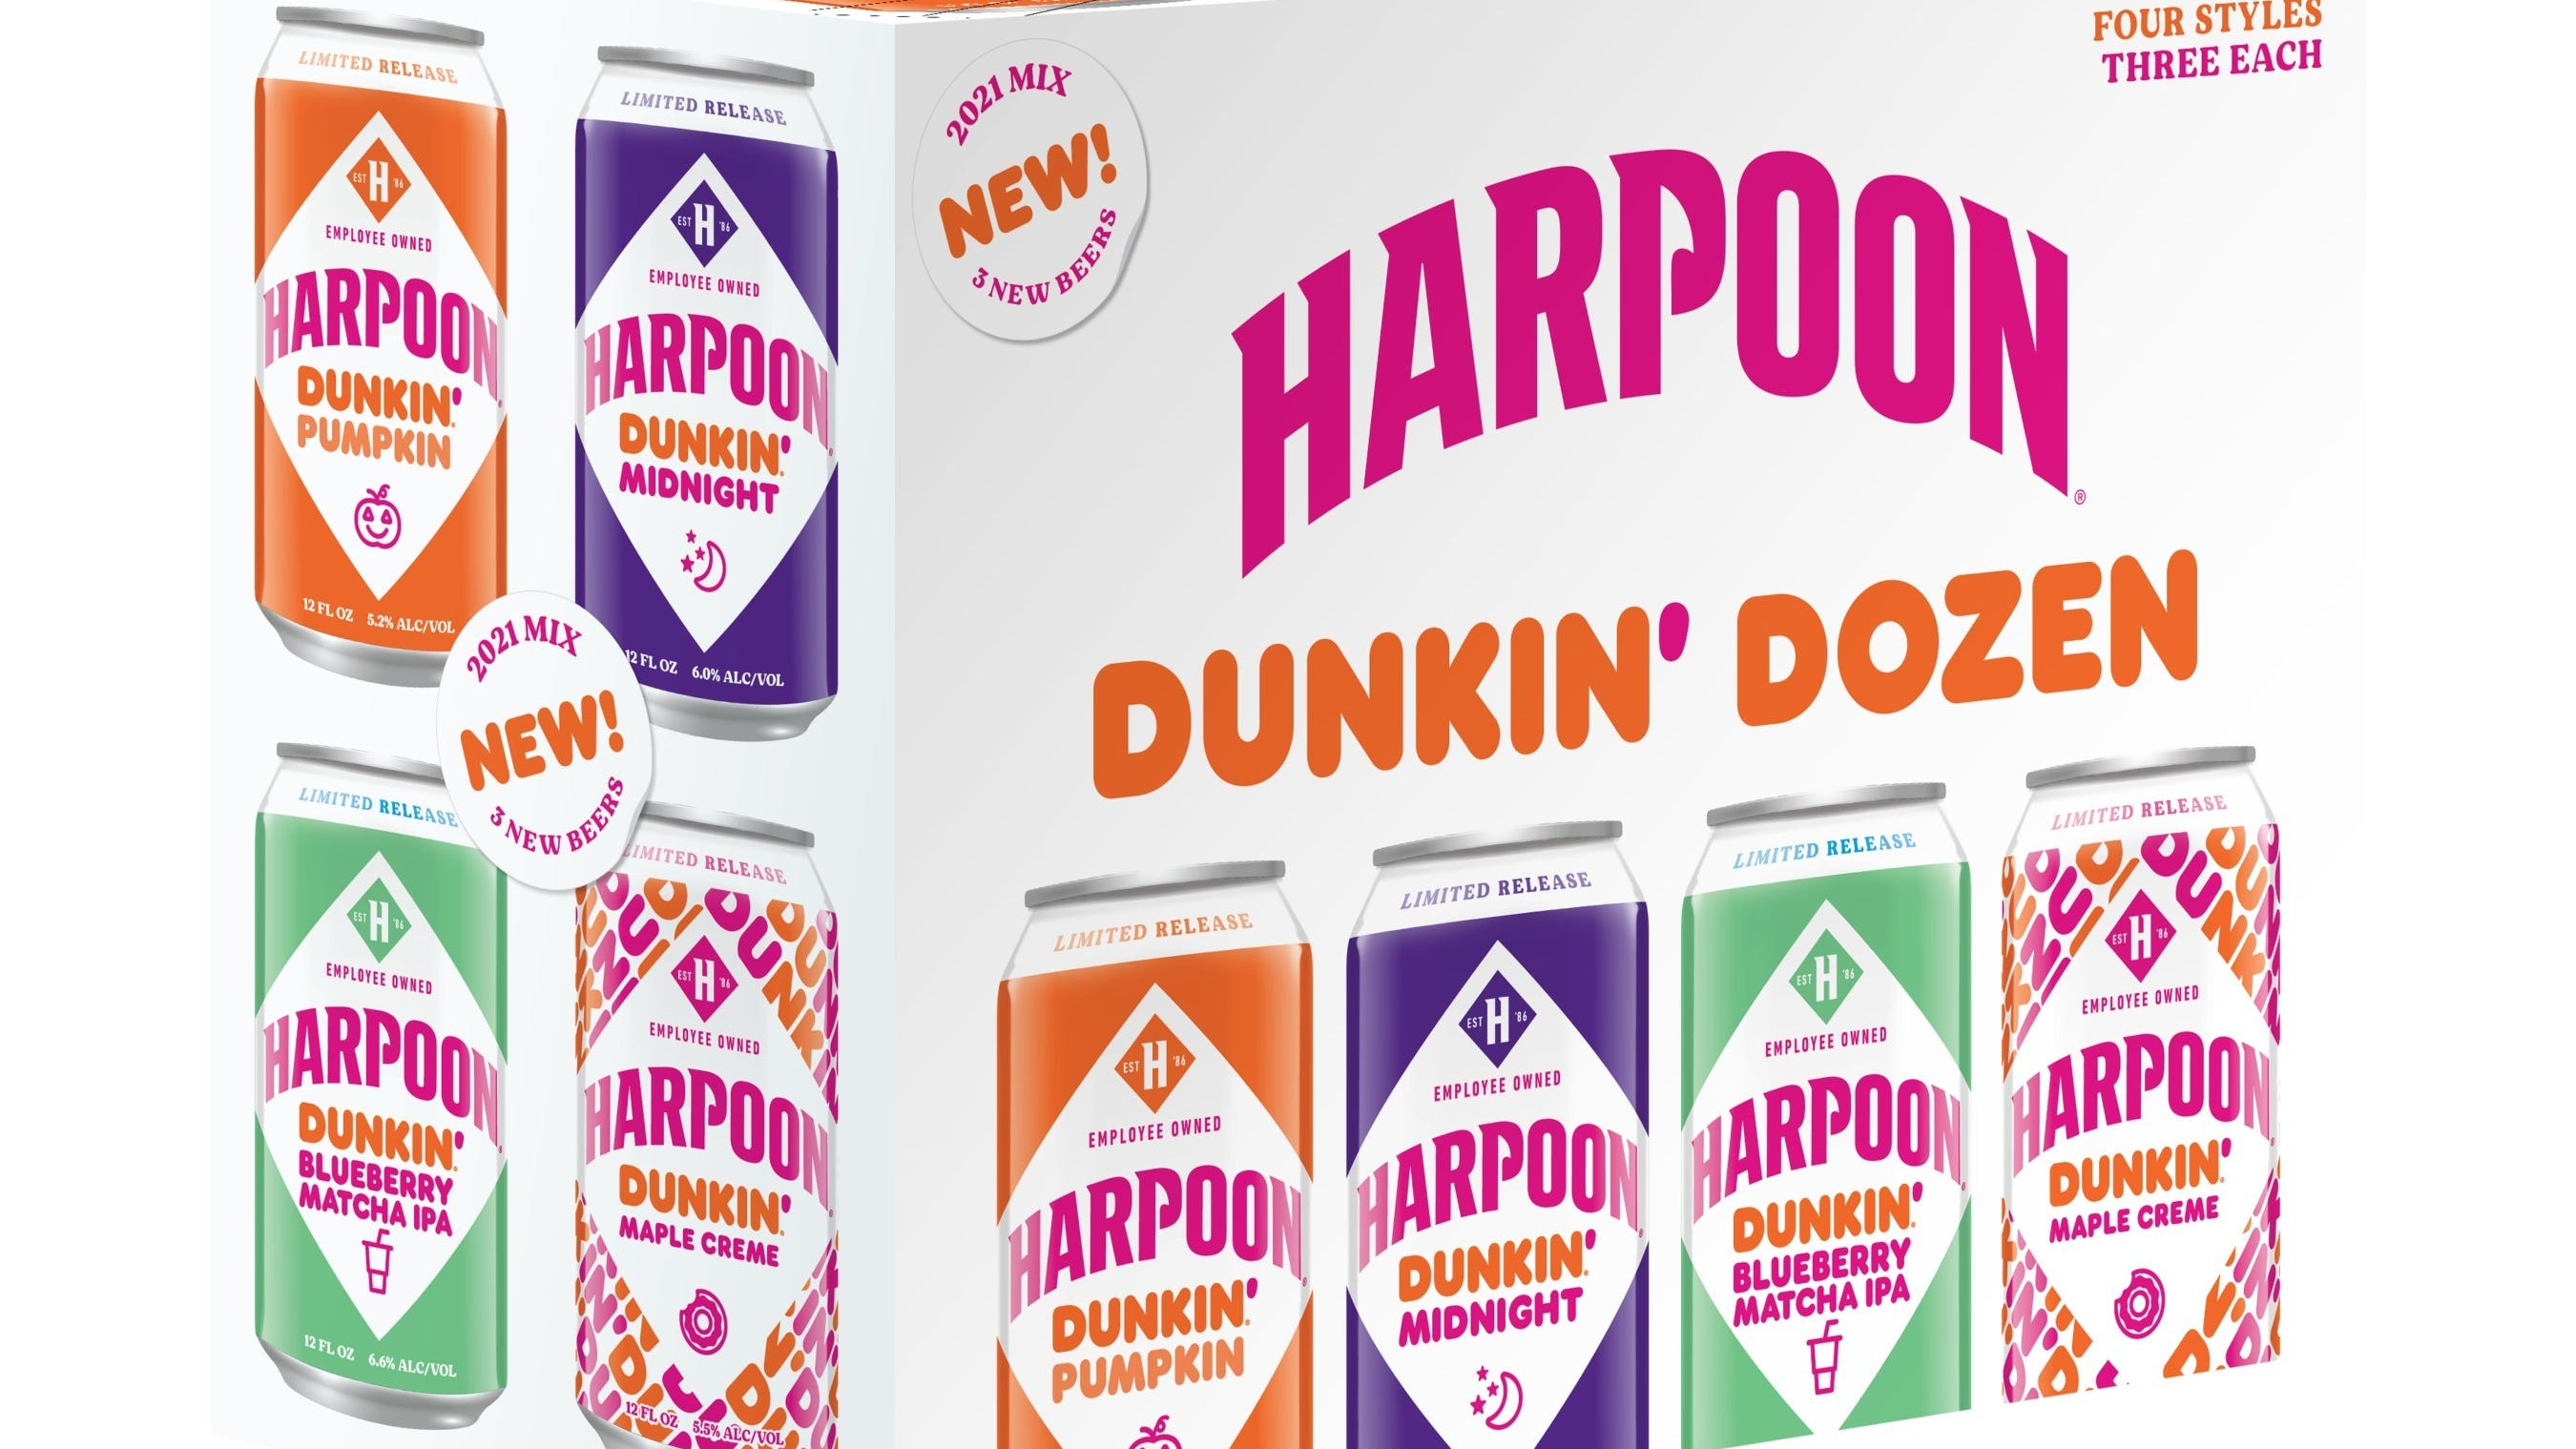 Dunkin' releasing 3 new fall beer flavors made with coffee, matcha, and donuts